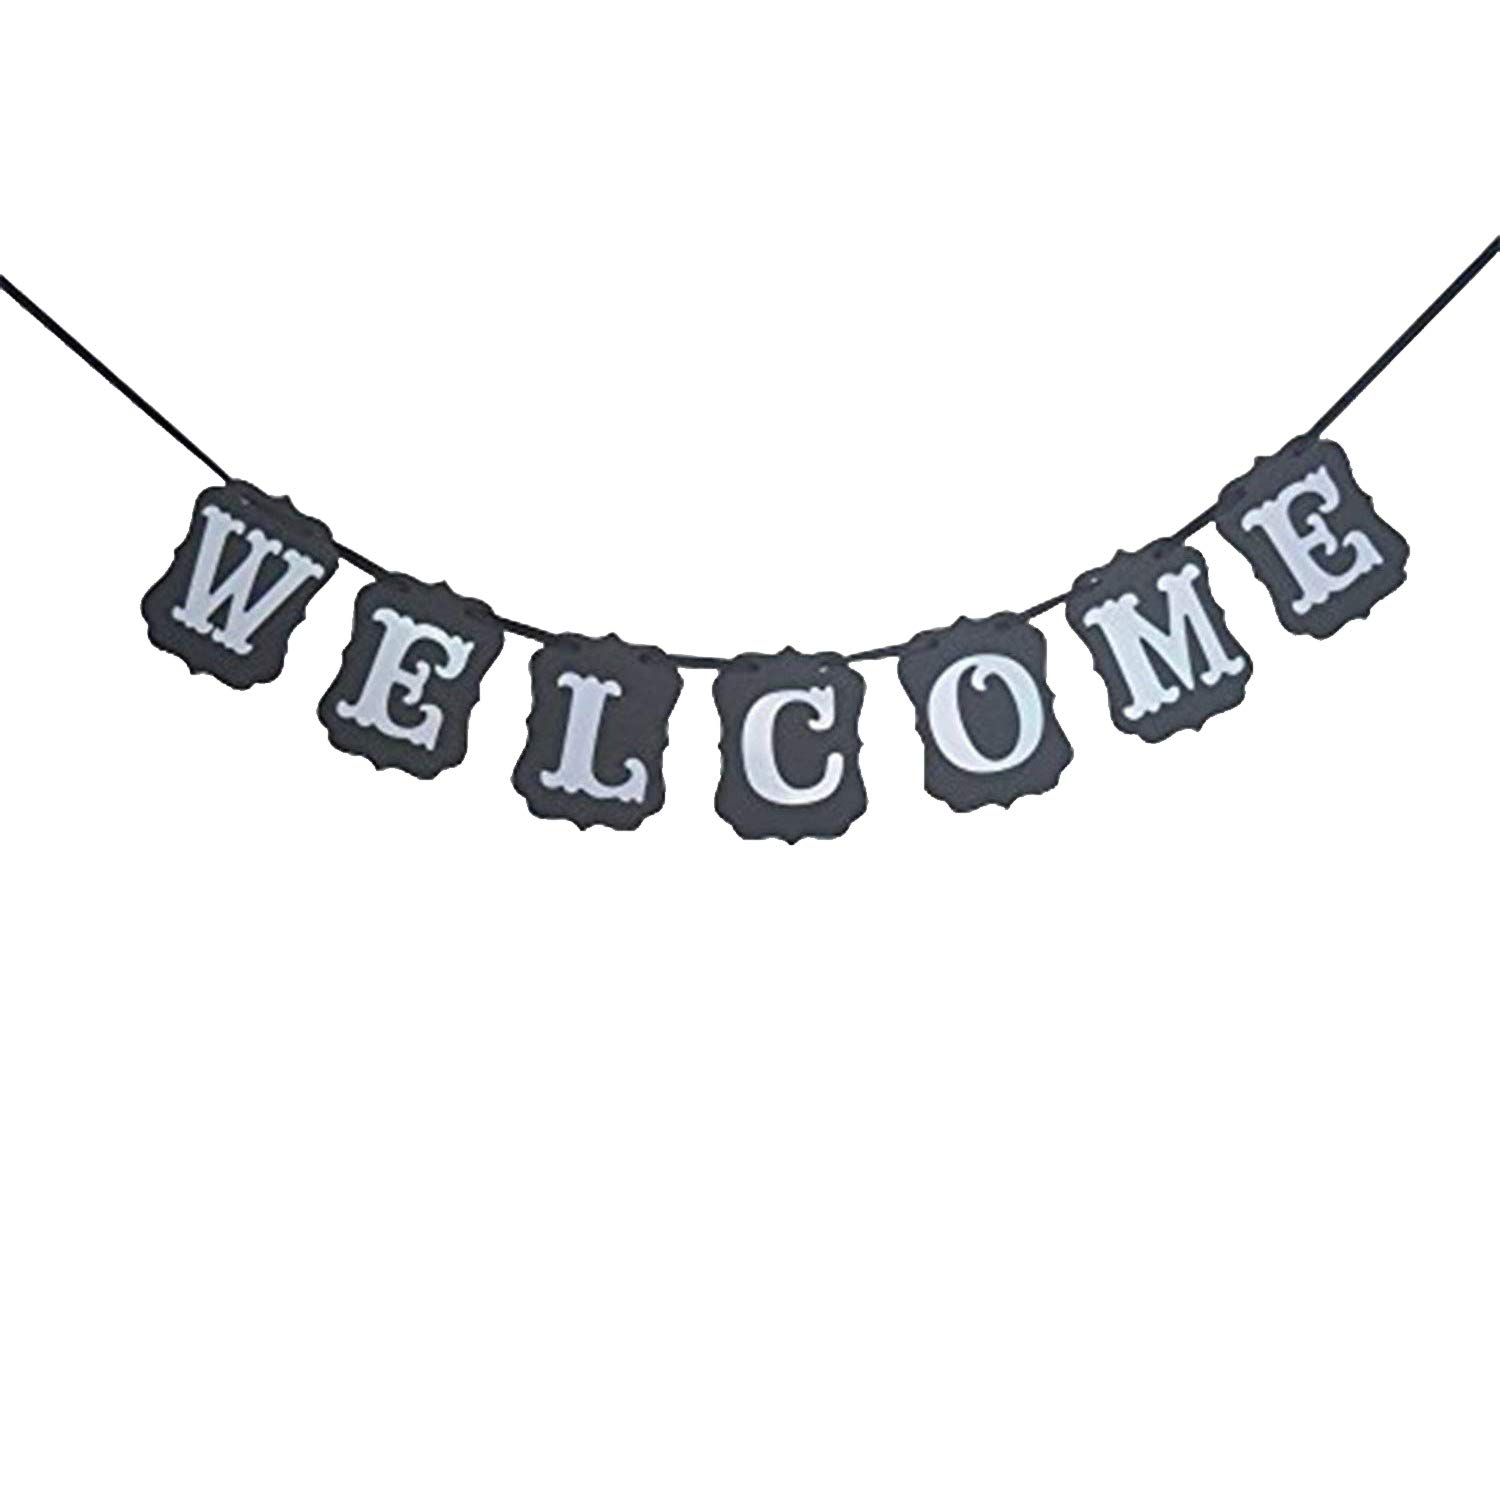 Welcome Banner Sign, Black Vintage - Great for Back to School, Wedding, Bridal Shower, Bachelorette Party, Baby Shower, Classroom, Alumni Homecoming, Reunion, Mantle, Fireplace, Graduation | Large